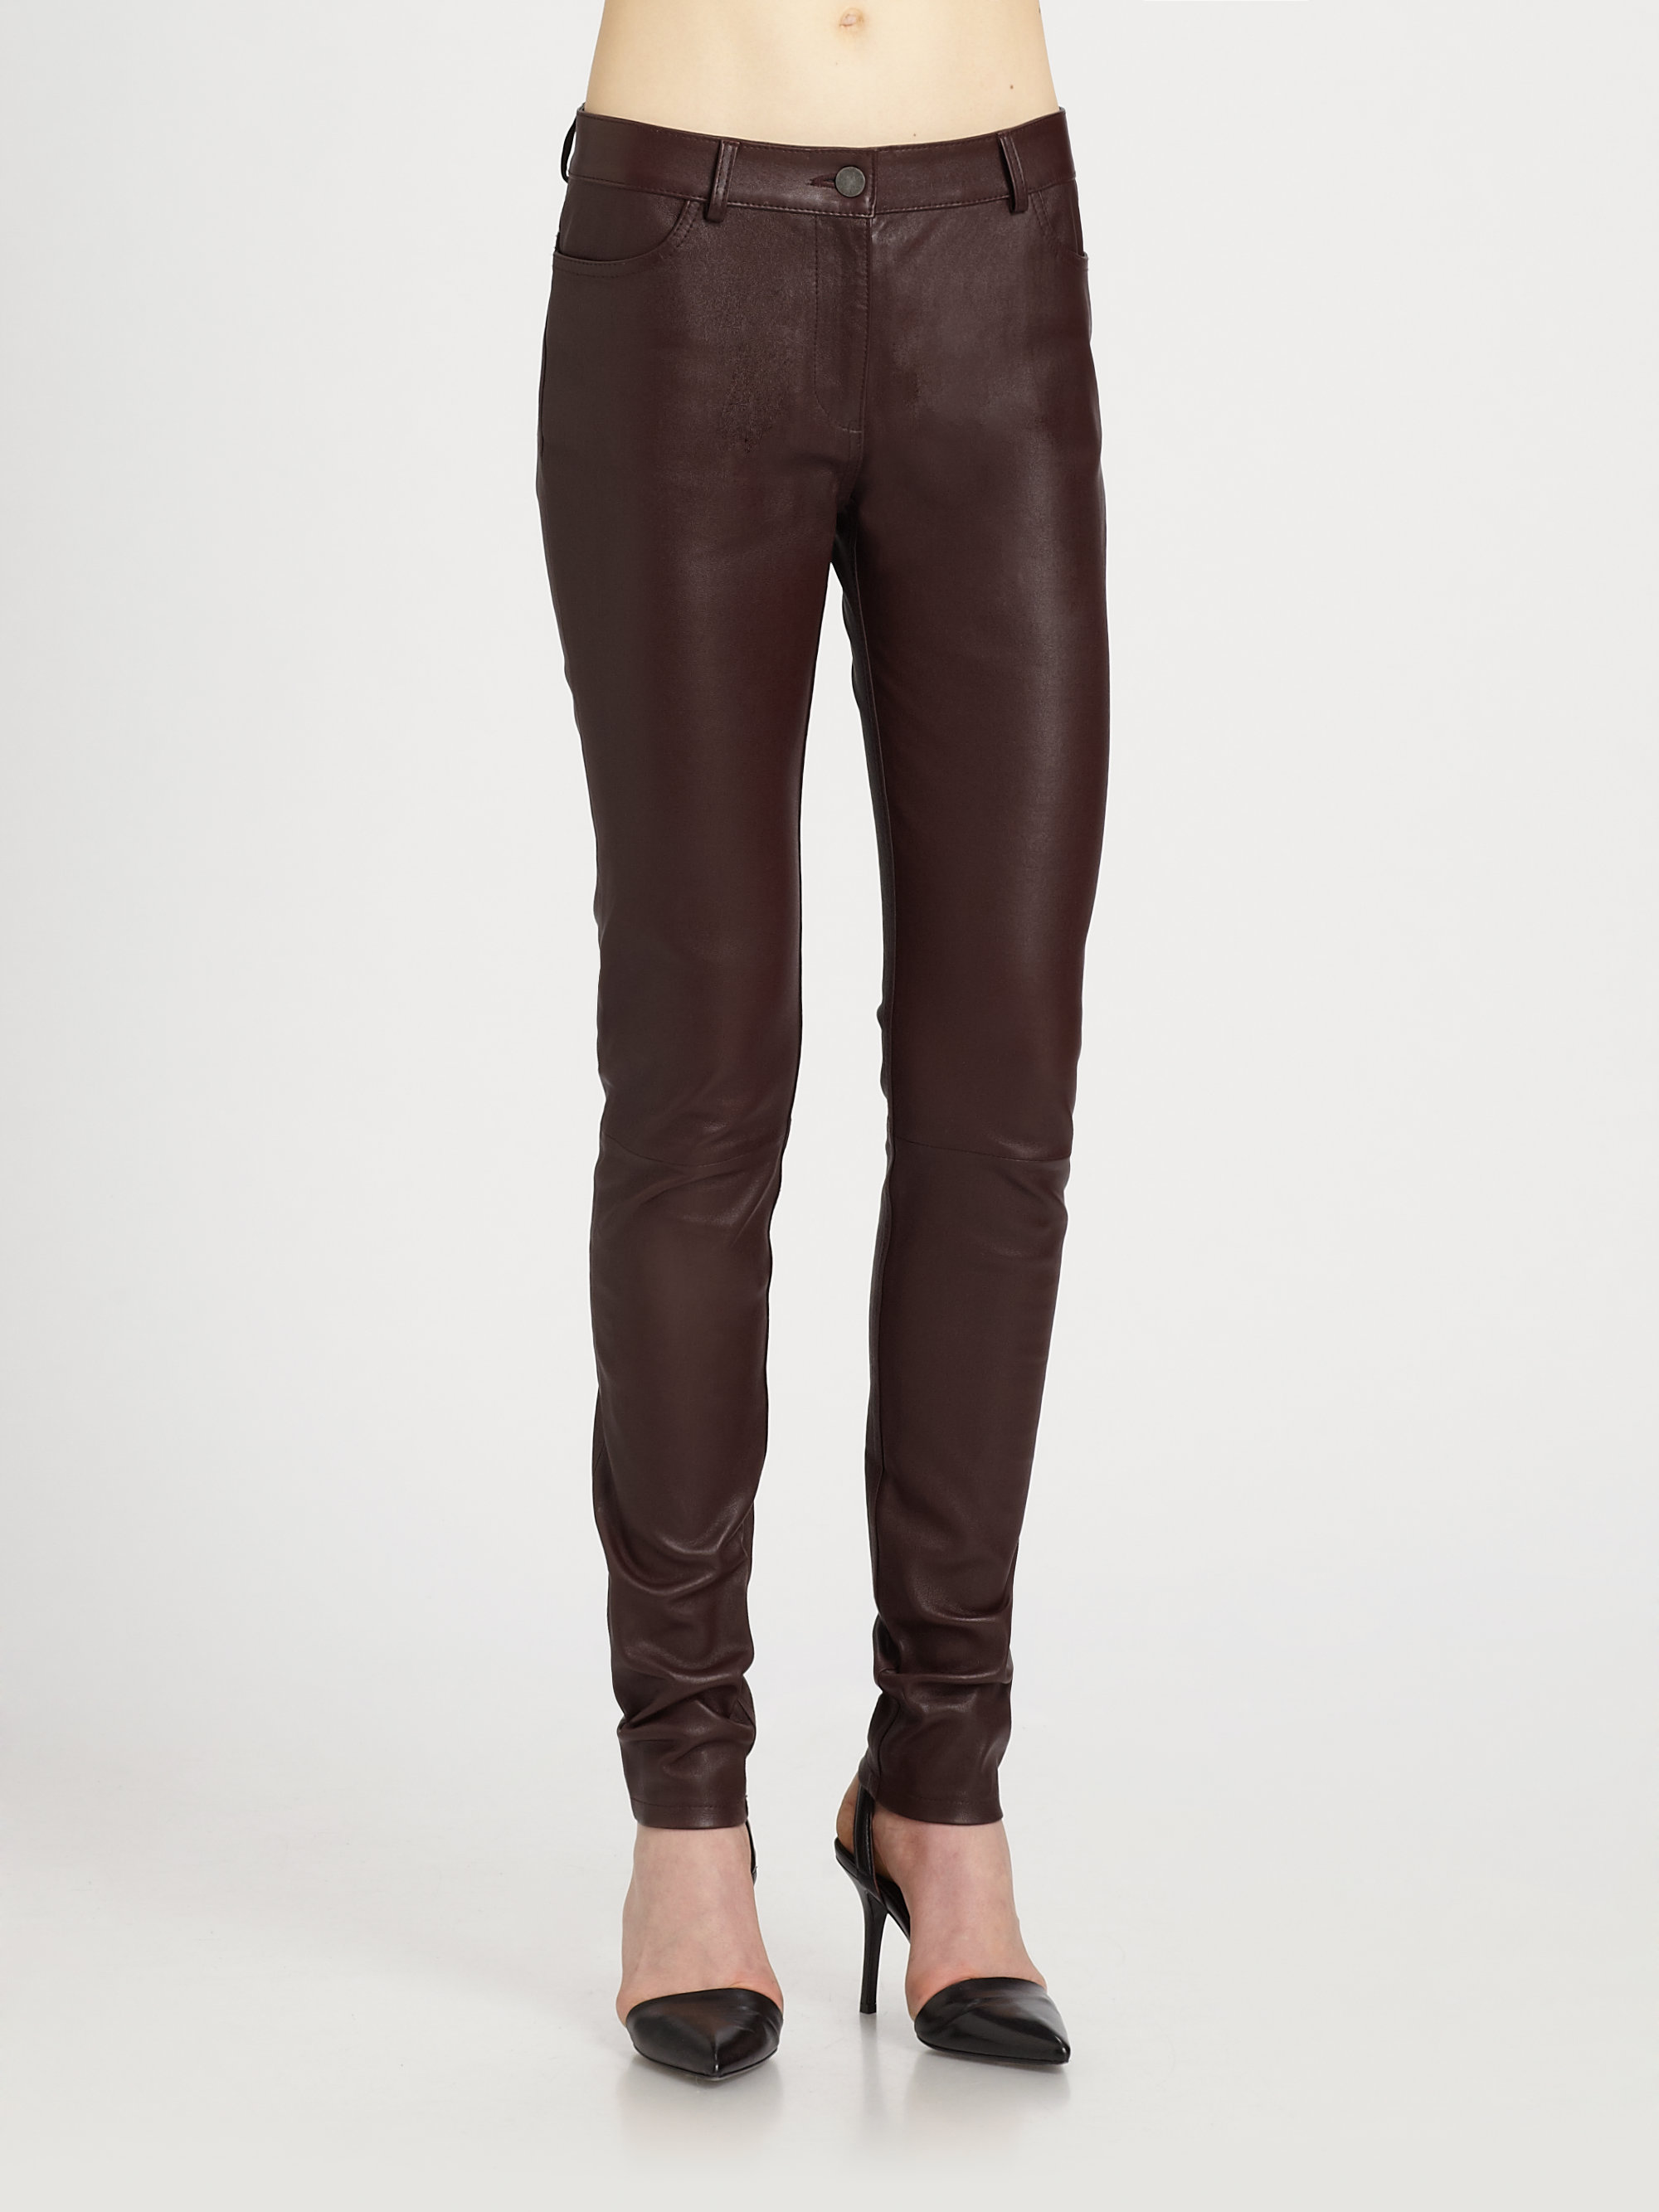 3dacb0debfe8 Lyst - T By Alexander Wang Stretch-leather Pants in Brown